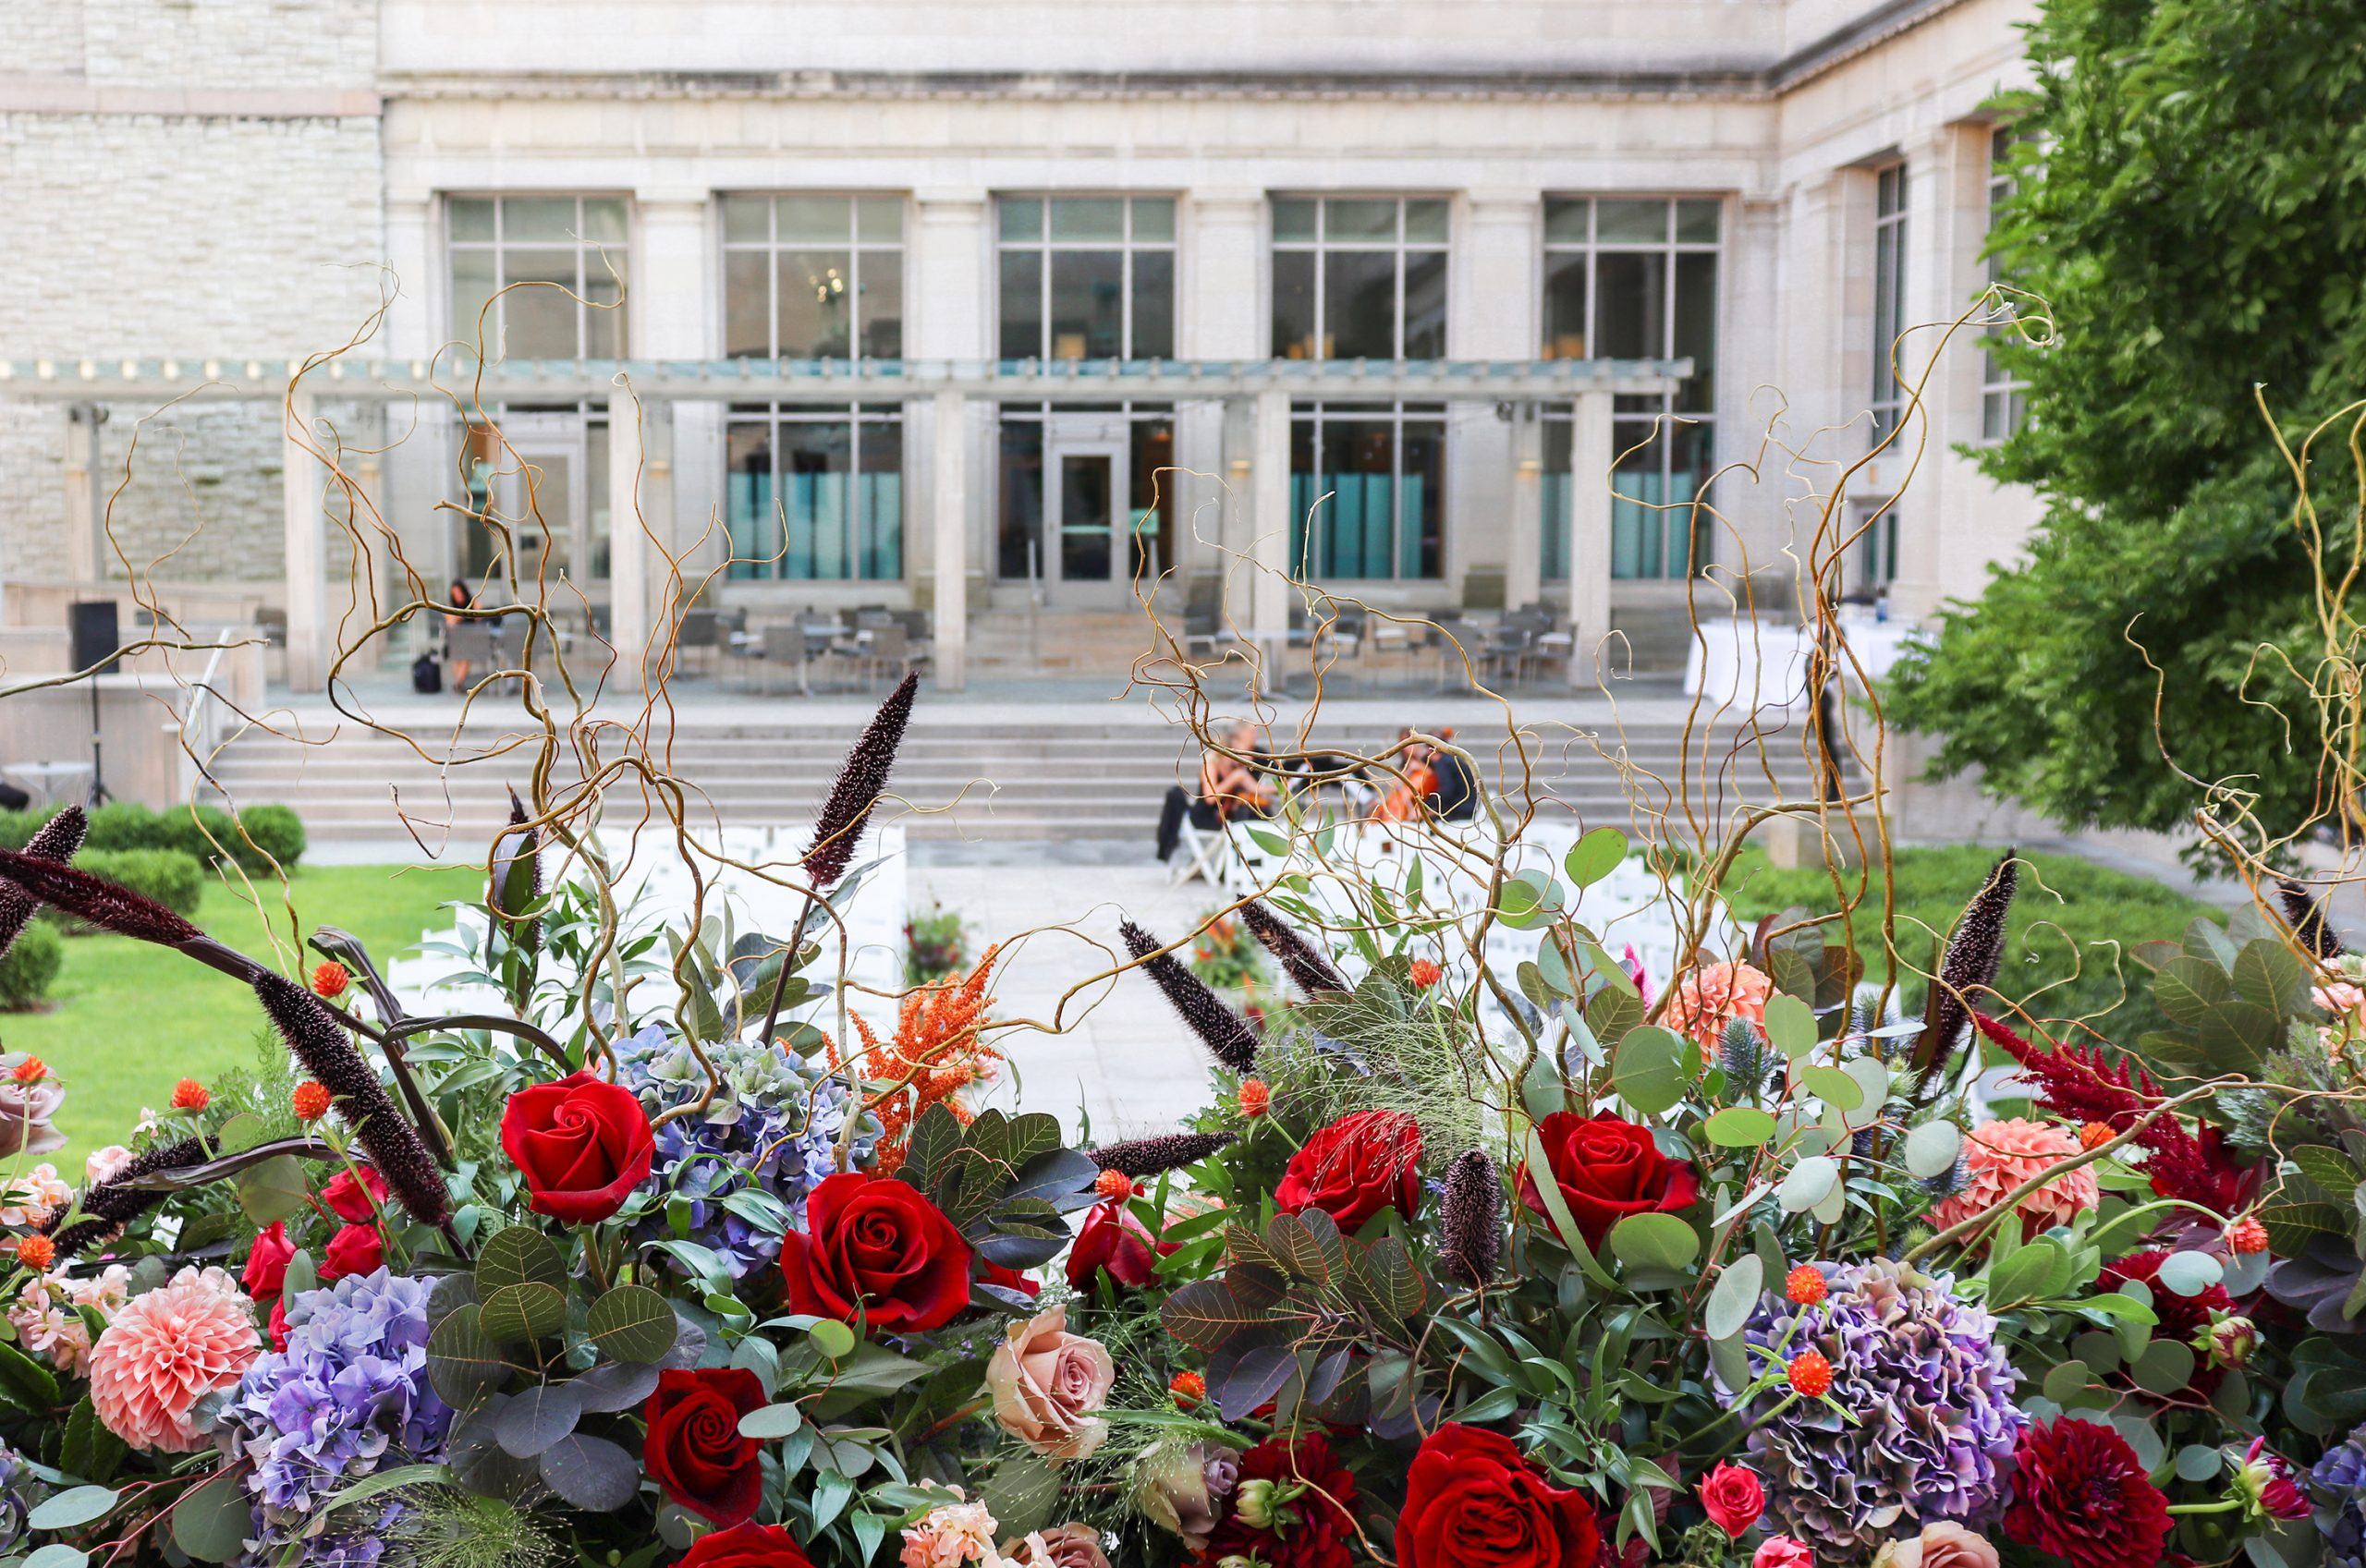 A courtyard view of colorful fall wedding flowers on the balcony at the historic Cincinnati Art Museum.